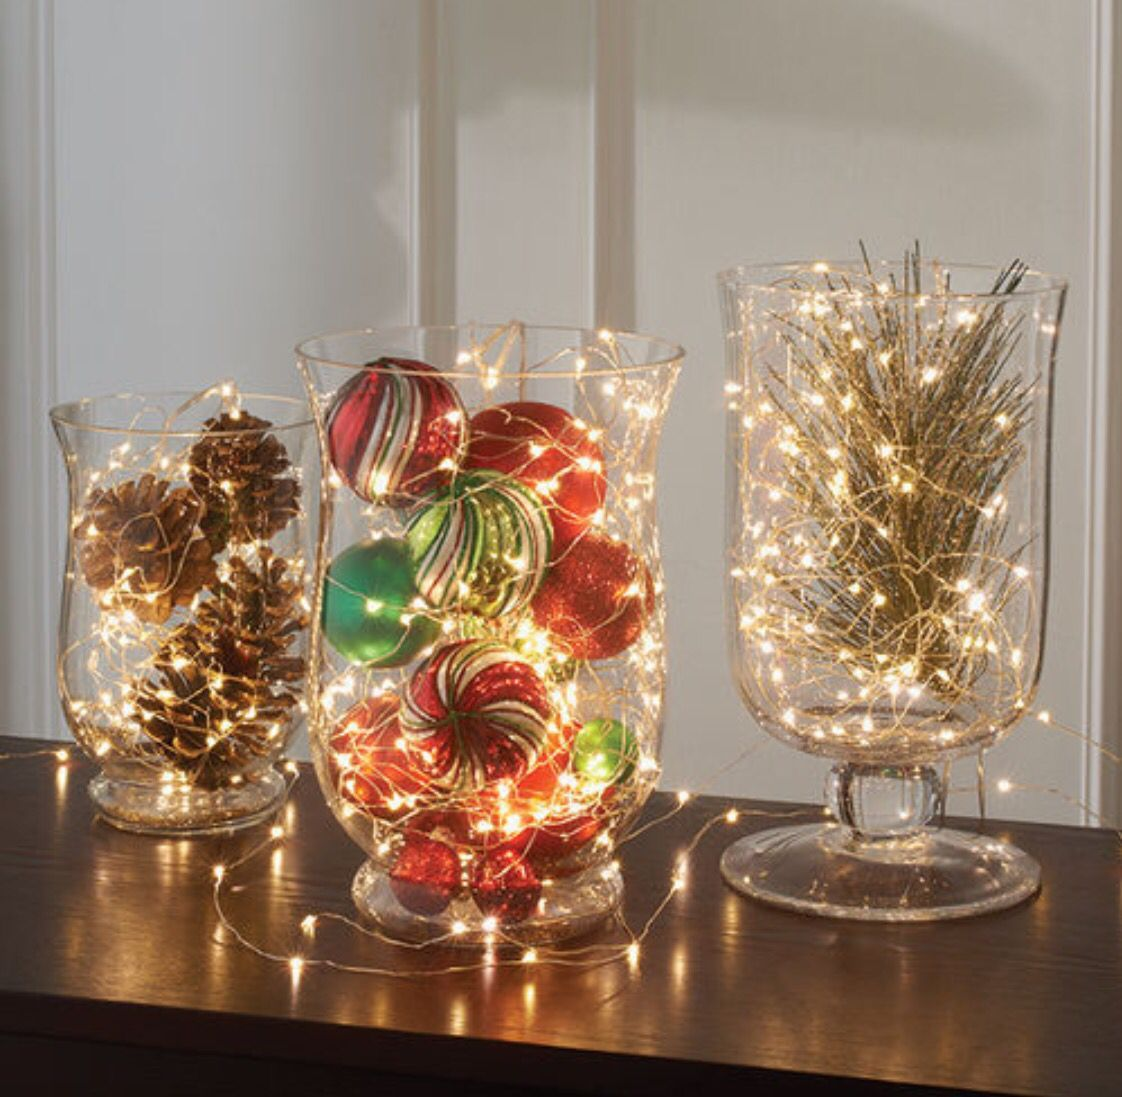 the office christmas ornaments. 24 Christmas Decoration Ideas For The Office Ornaments